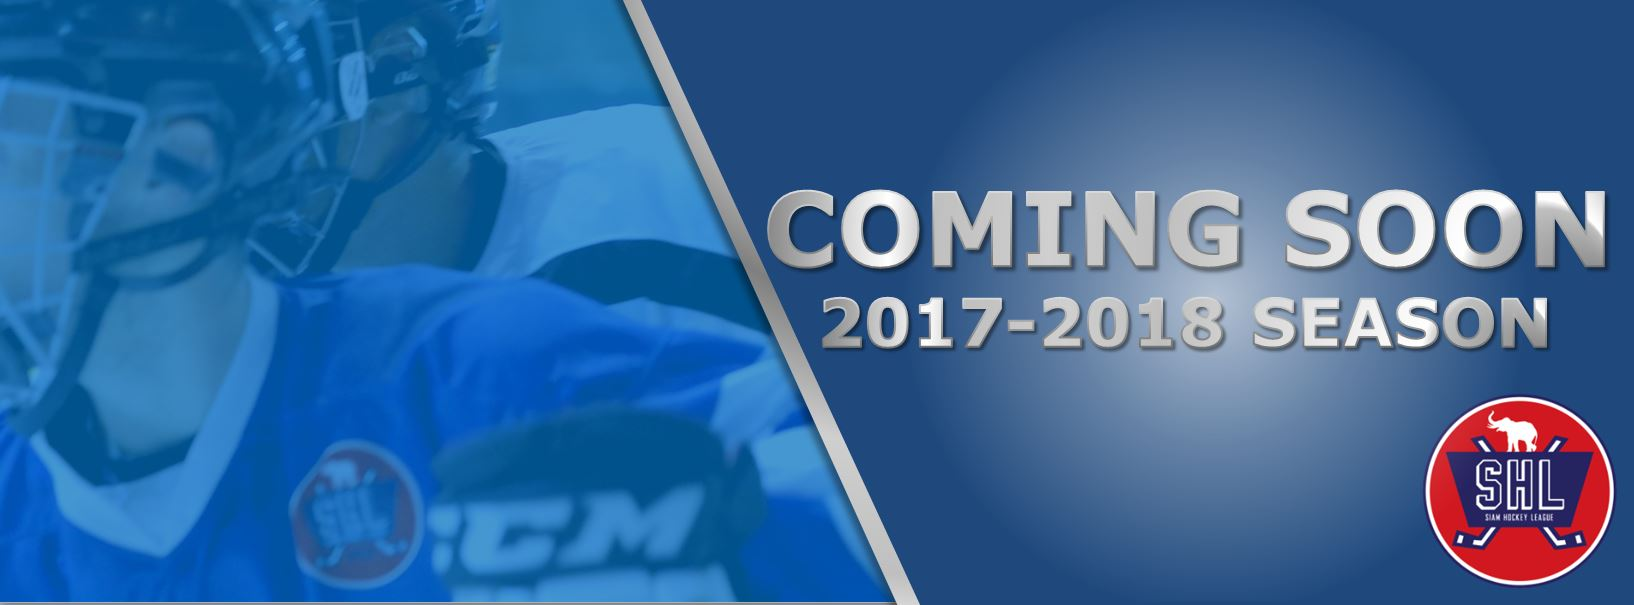 Coming Soon 2017-2018 Season